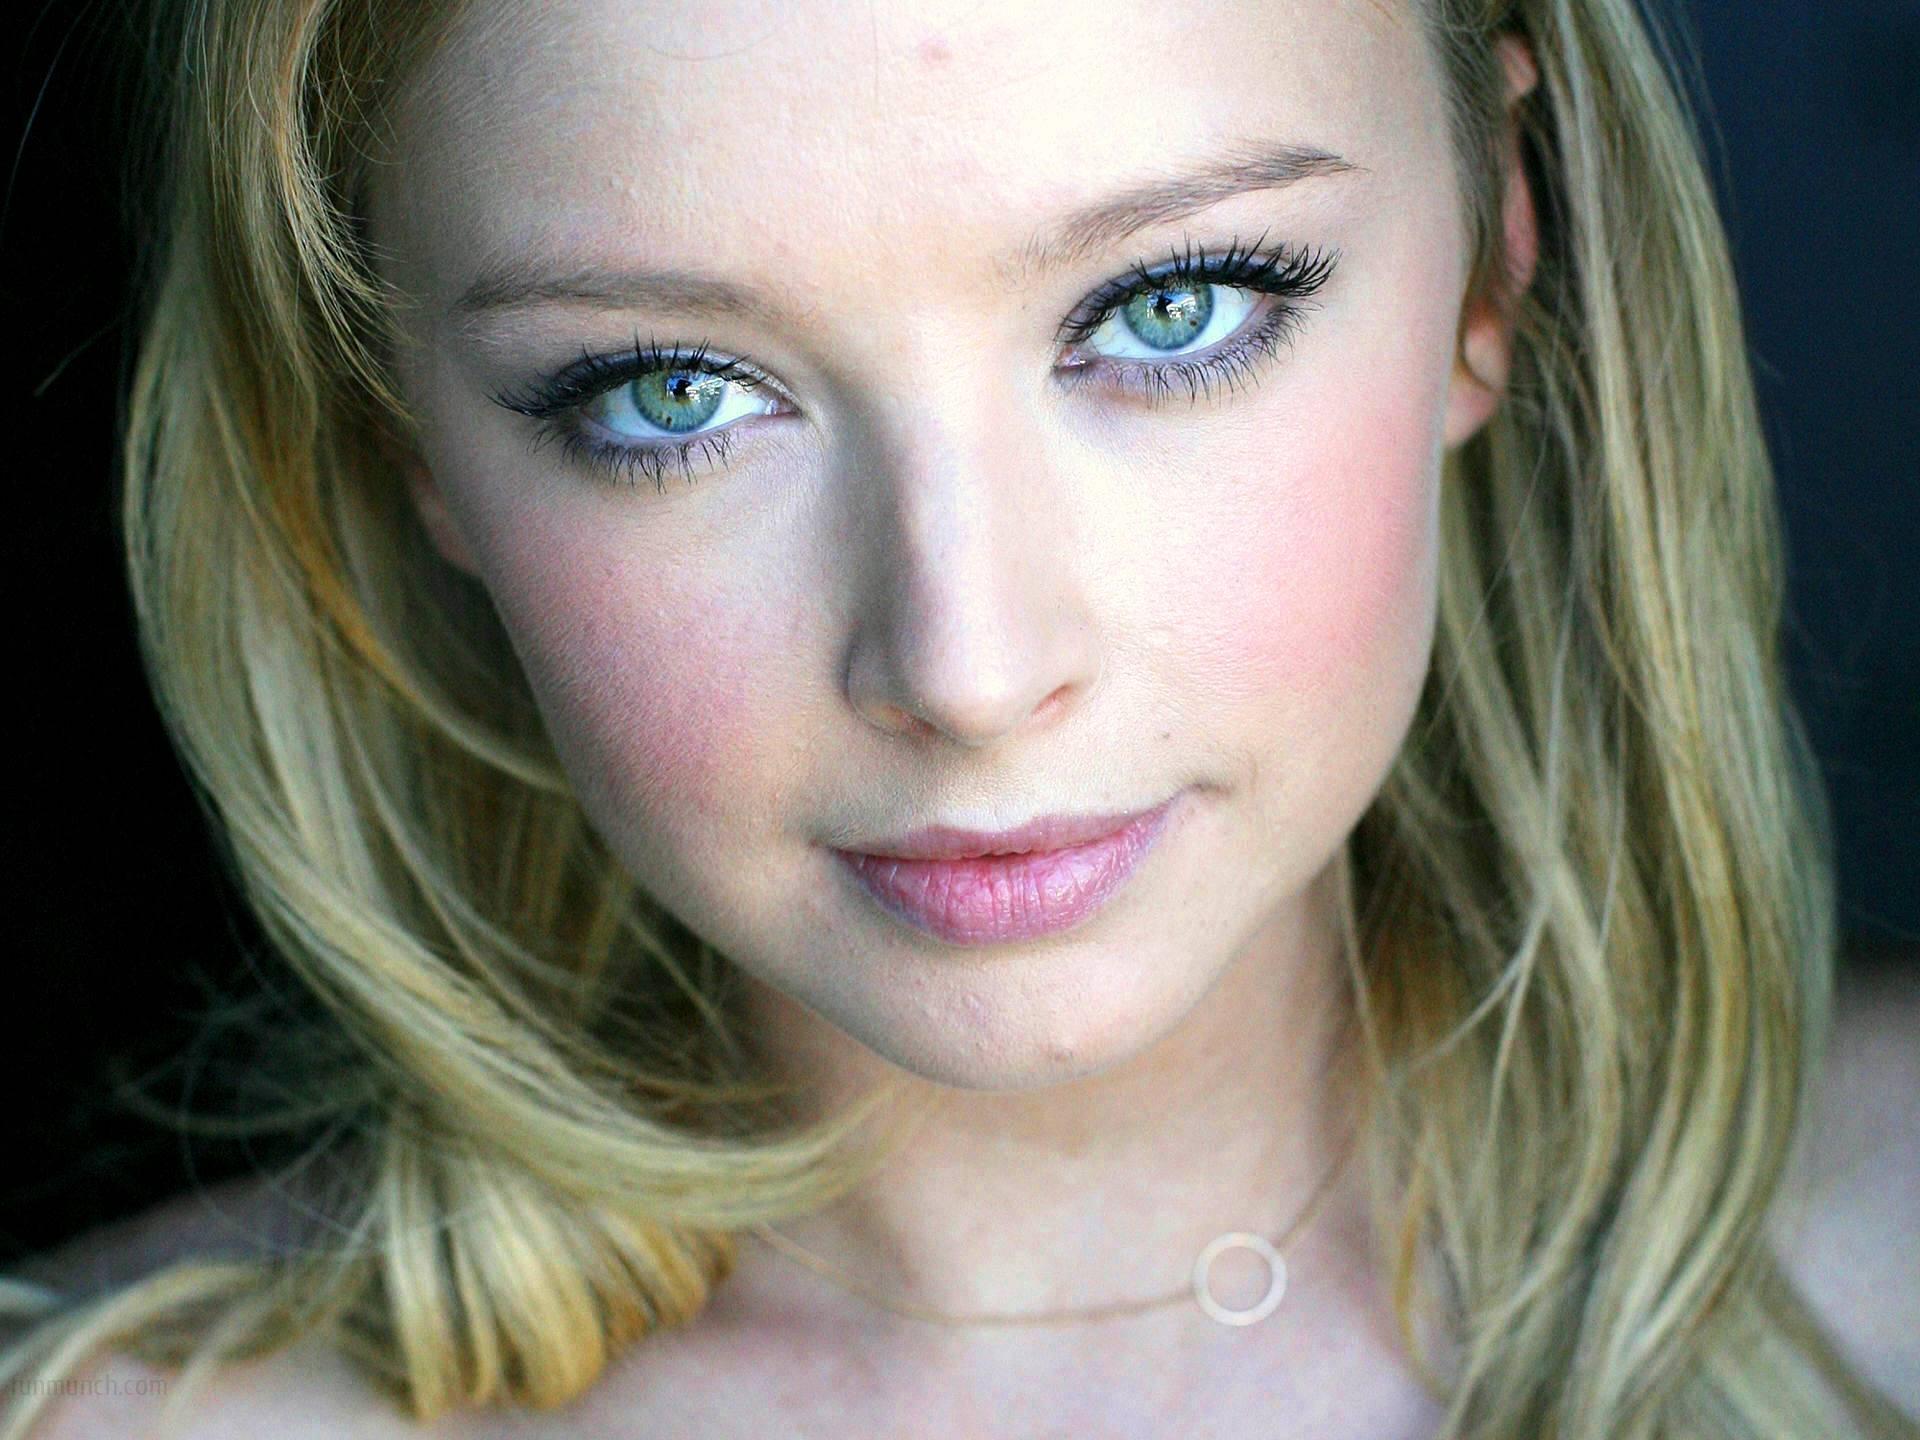 ... cute-smile-elisabeth-harnois-wallpapers wallpaper_elisabeth_harnois_wallpaper_015_1920x1440